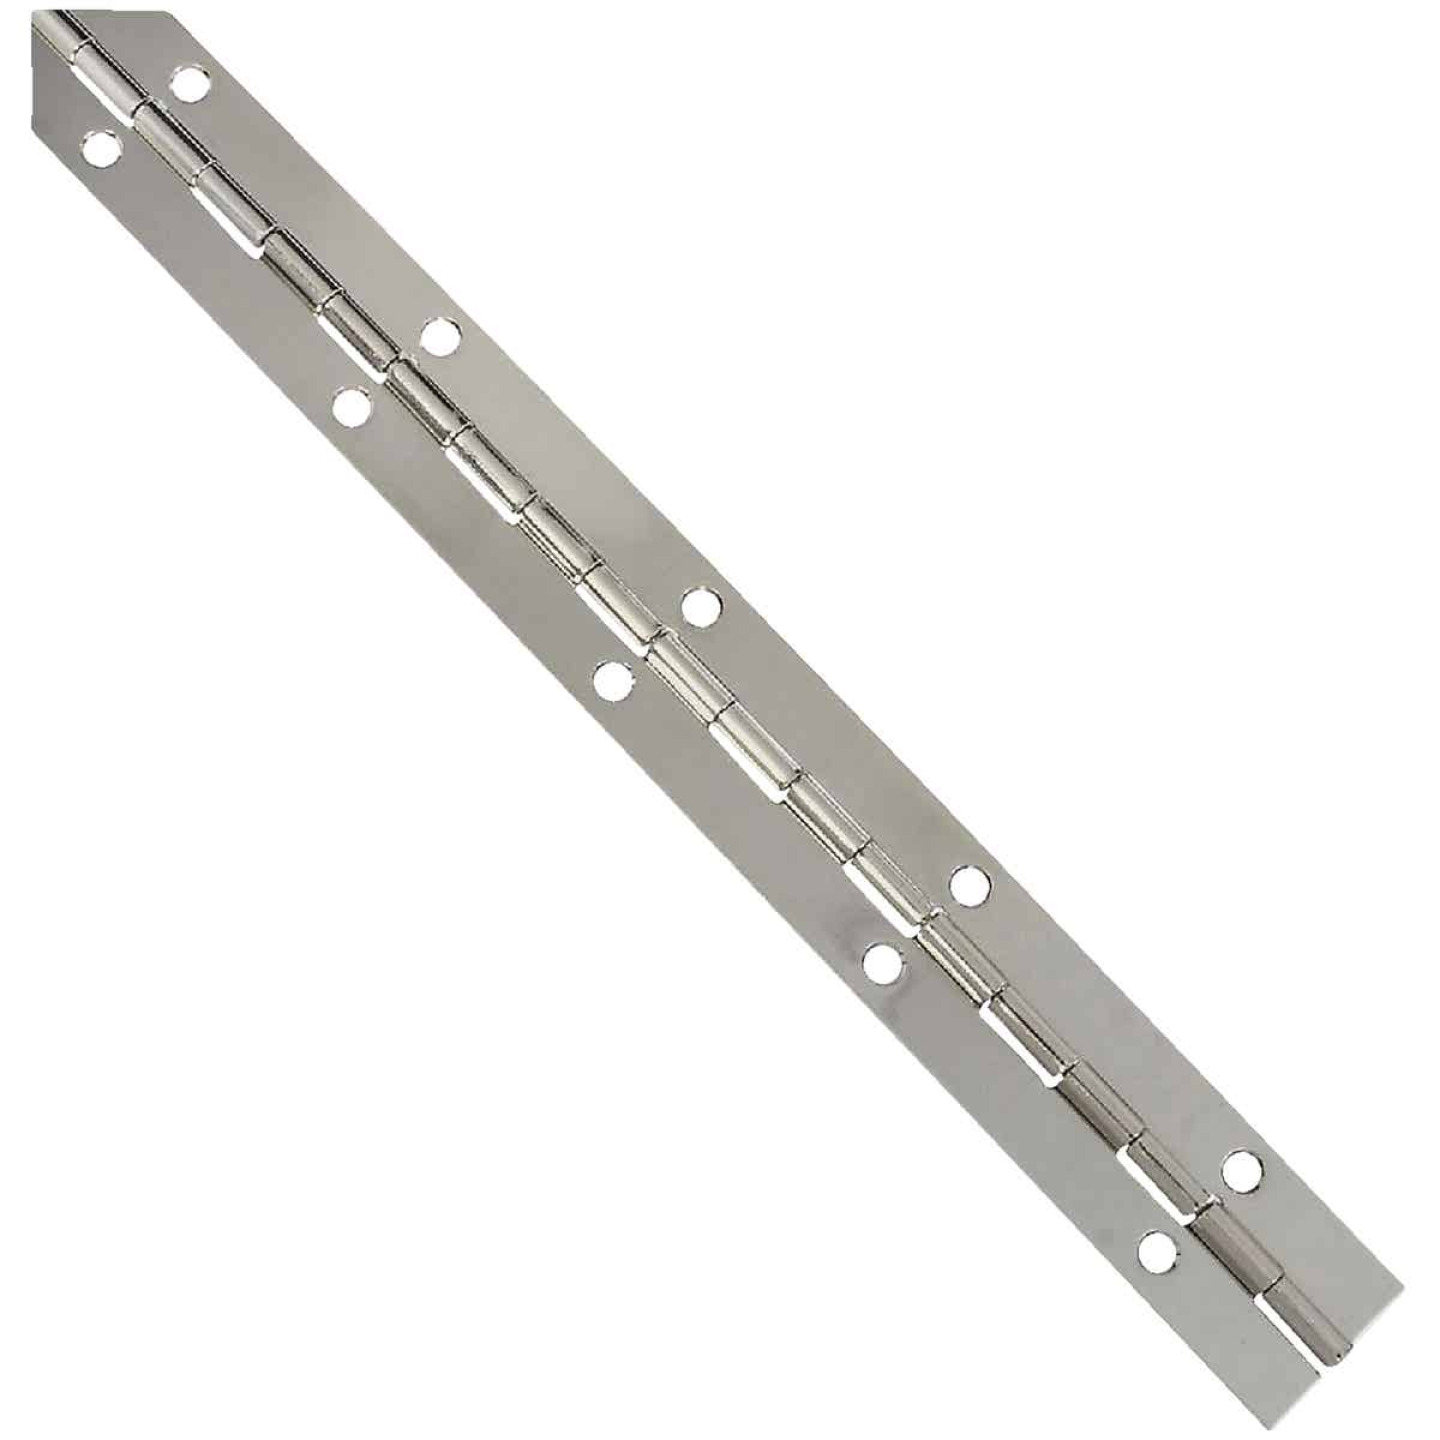 National Steel 1-1/16 In. x 12 In. Nickel Continuous Hinge Image 1